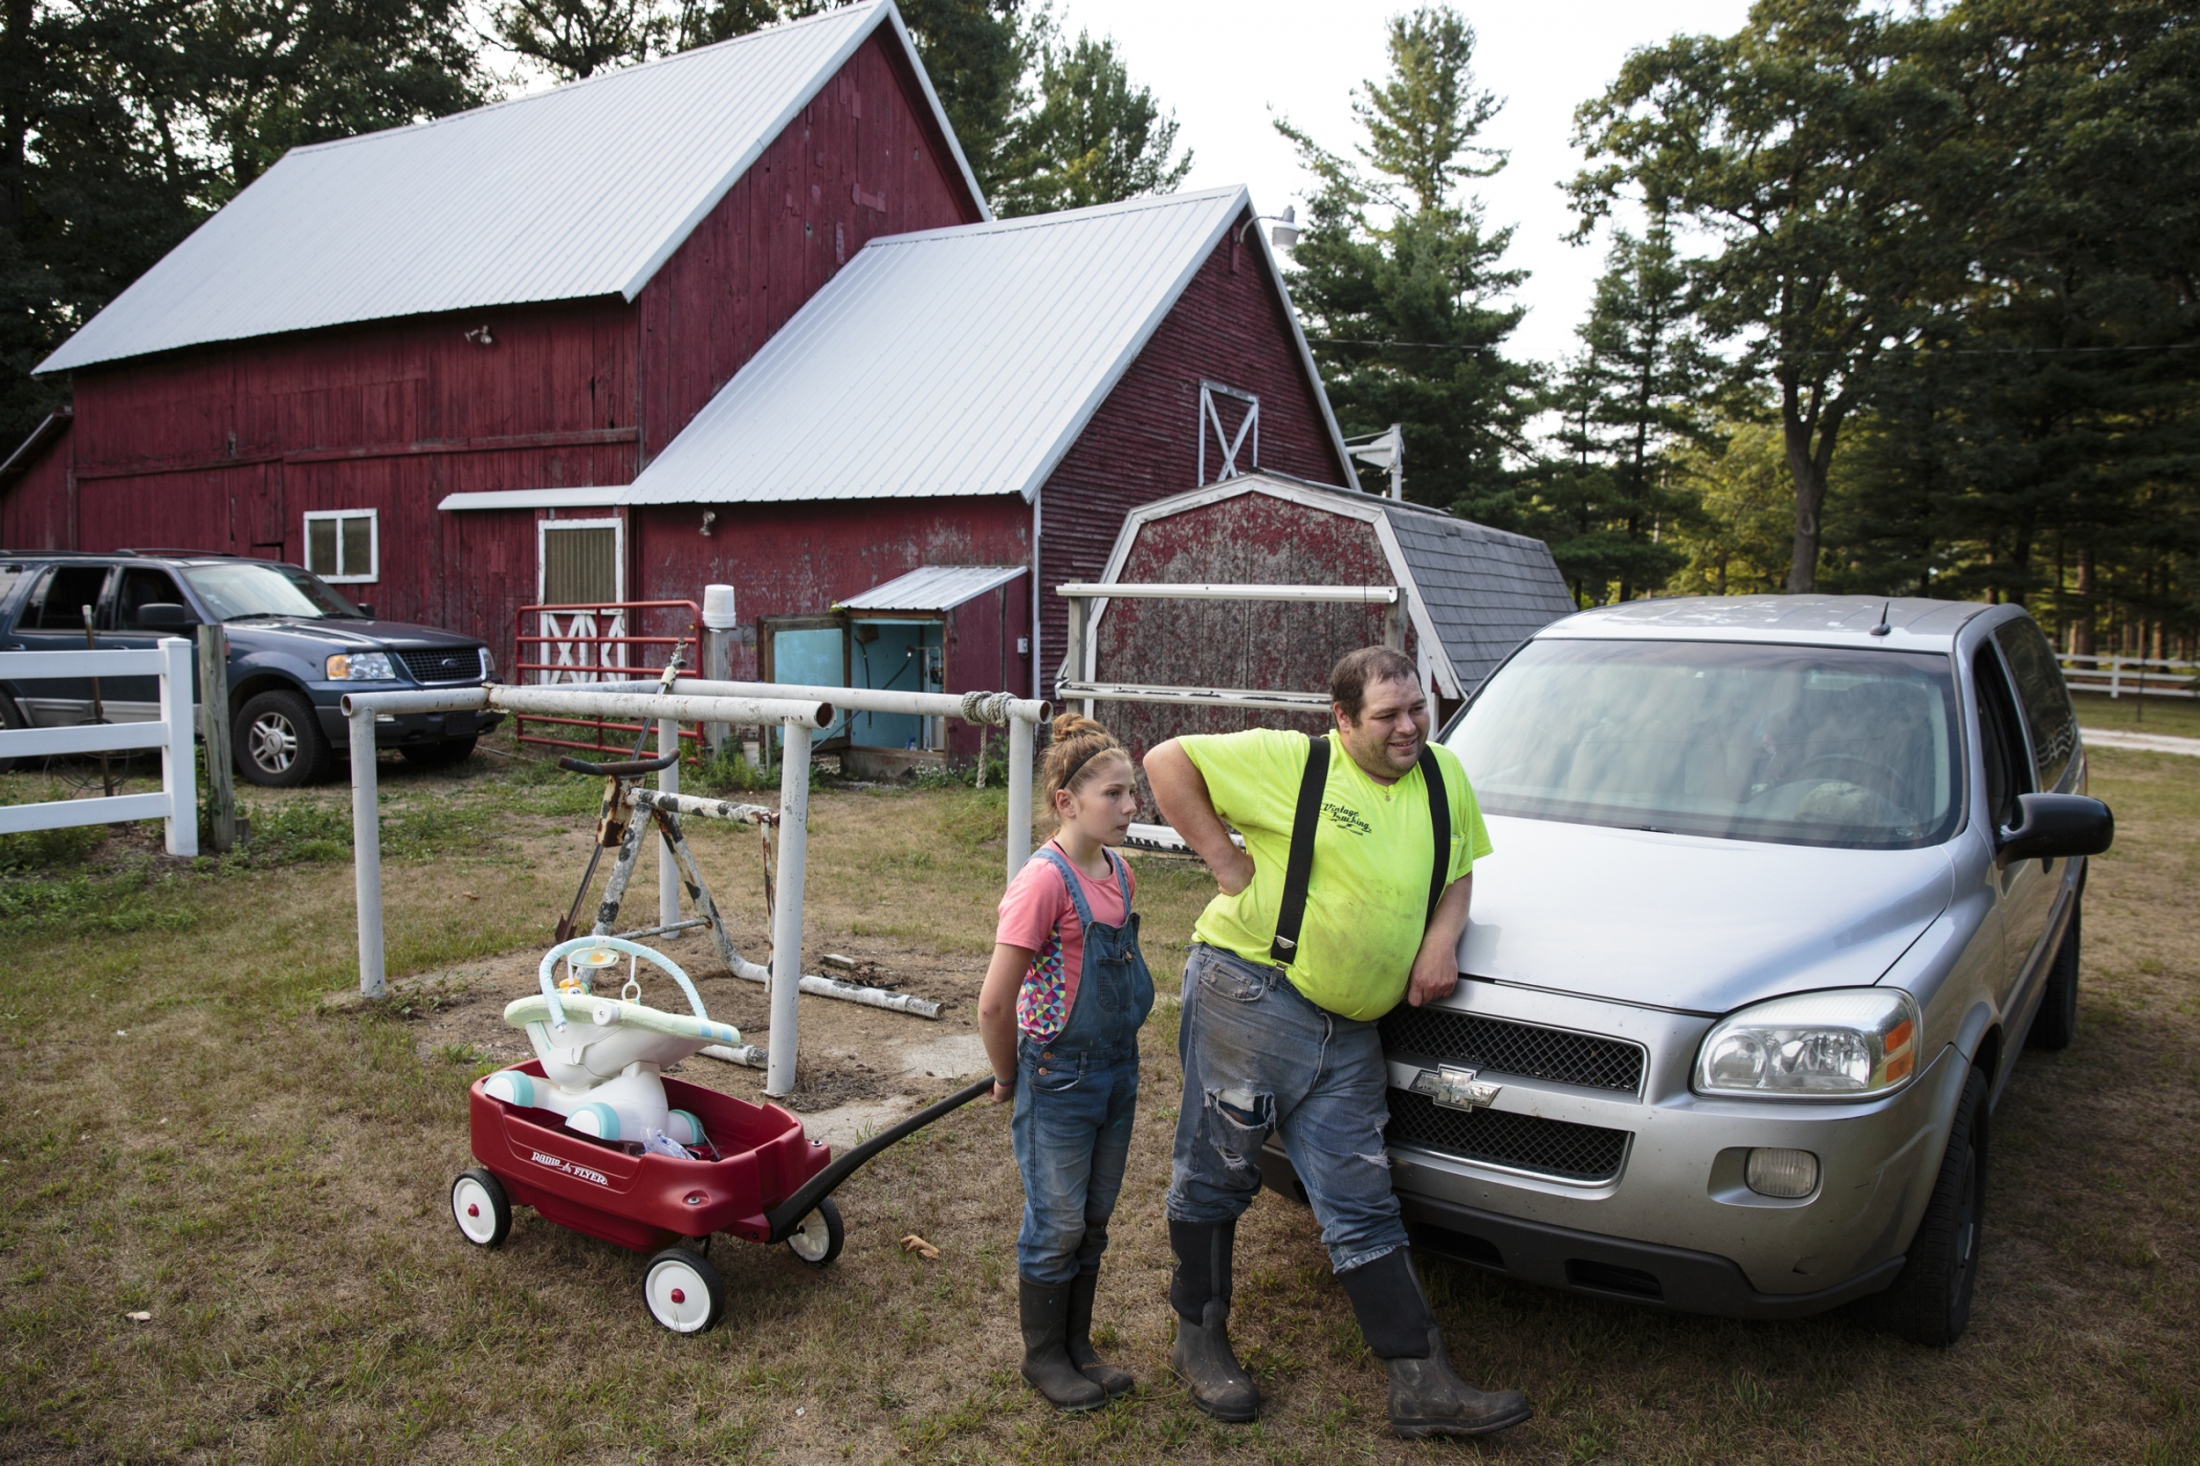 "Chad Bartlett and his daughter Mackenzie Maka, 10, chat with their neighbors at their hundred-year-old barn next to Chad's house in Twin Lake, Michigan. Chad left behind the city life to create an environment for his children to learn skills and lessons beyond the life of an urban city. ""We lived in an apartment for a long time,"" Chad said. ""Back then, we had to go out to do things, because they really couldn't go outside and play because there's no area that was ours. Here, it gets our family active a lot more, because we're outside doing stuff. We're not in the house all the time."""